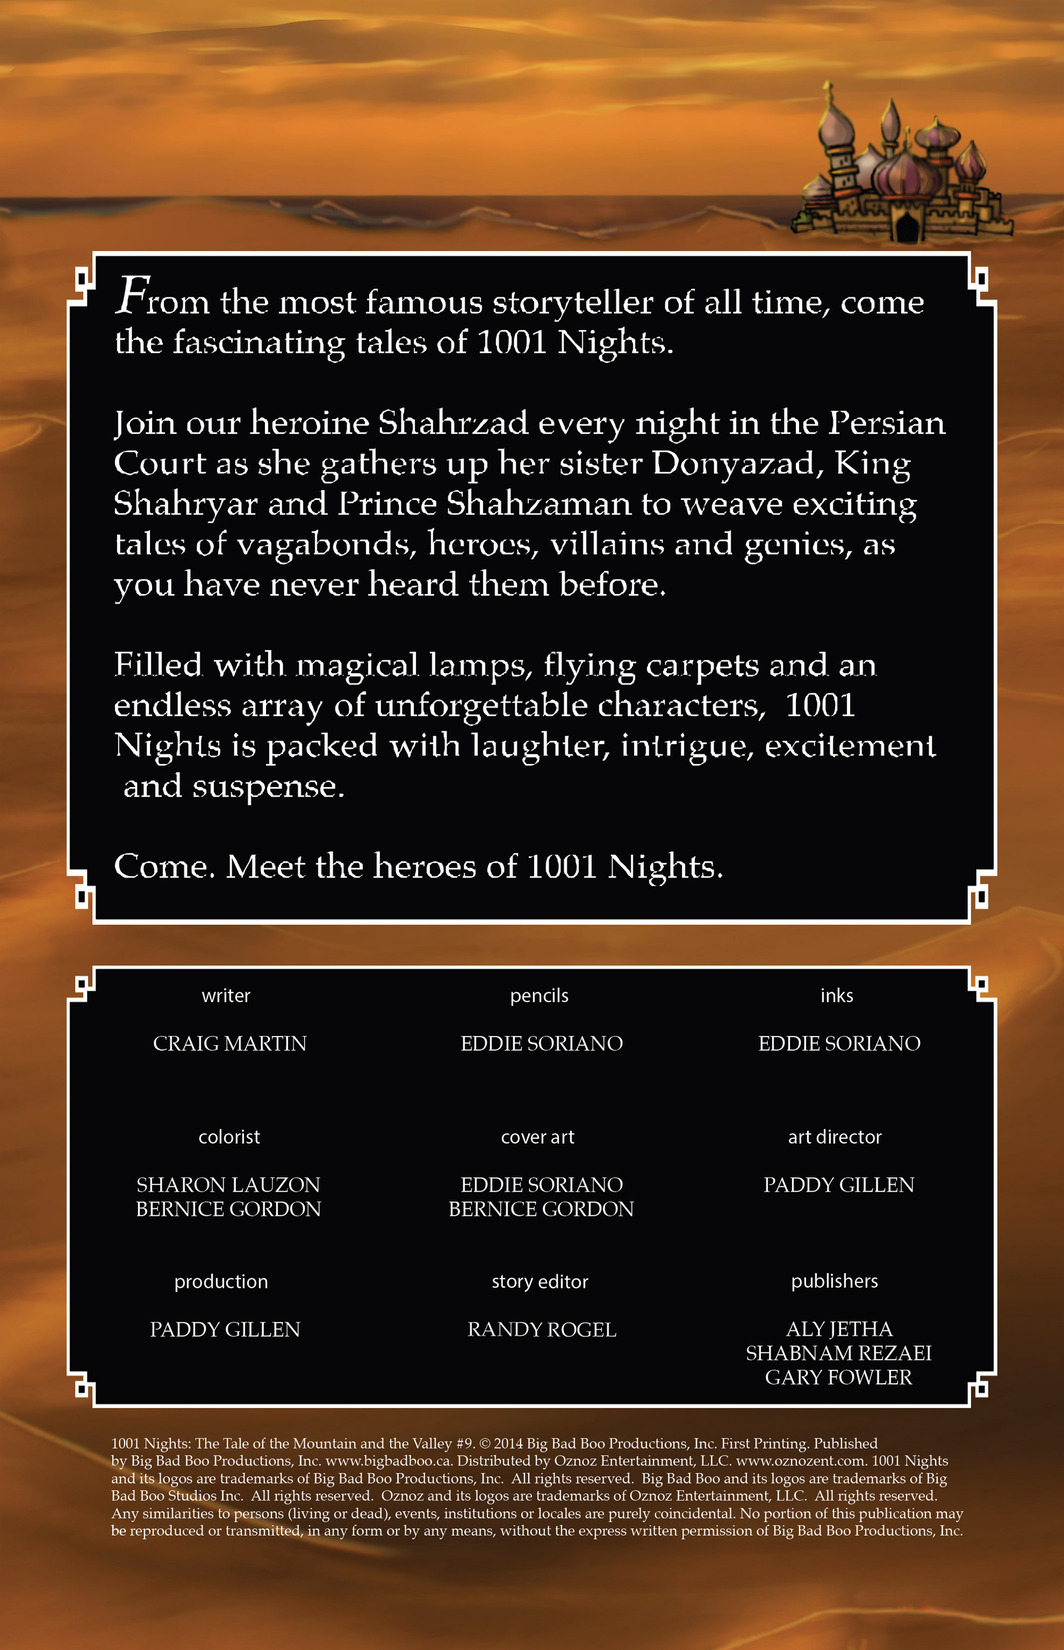 Read online 1001 Nights comic -  Issue #9 - 2